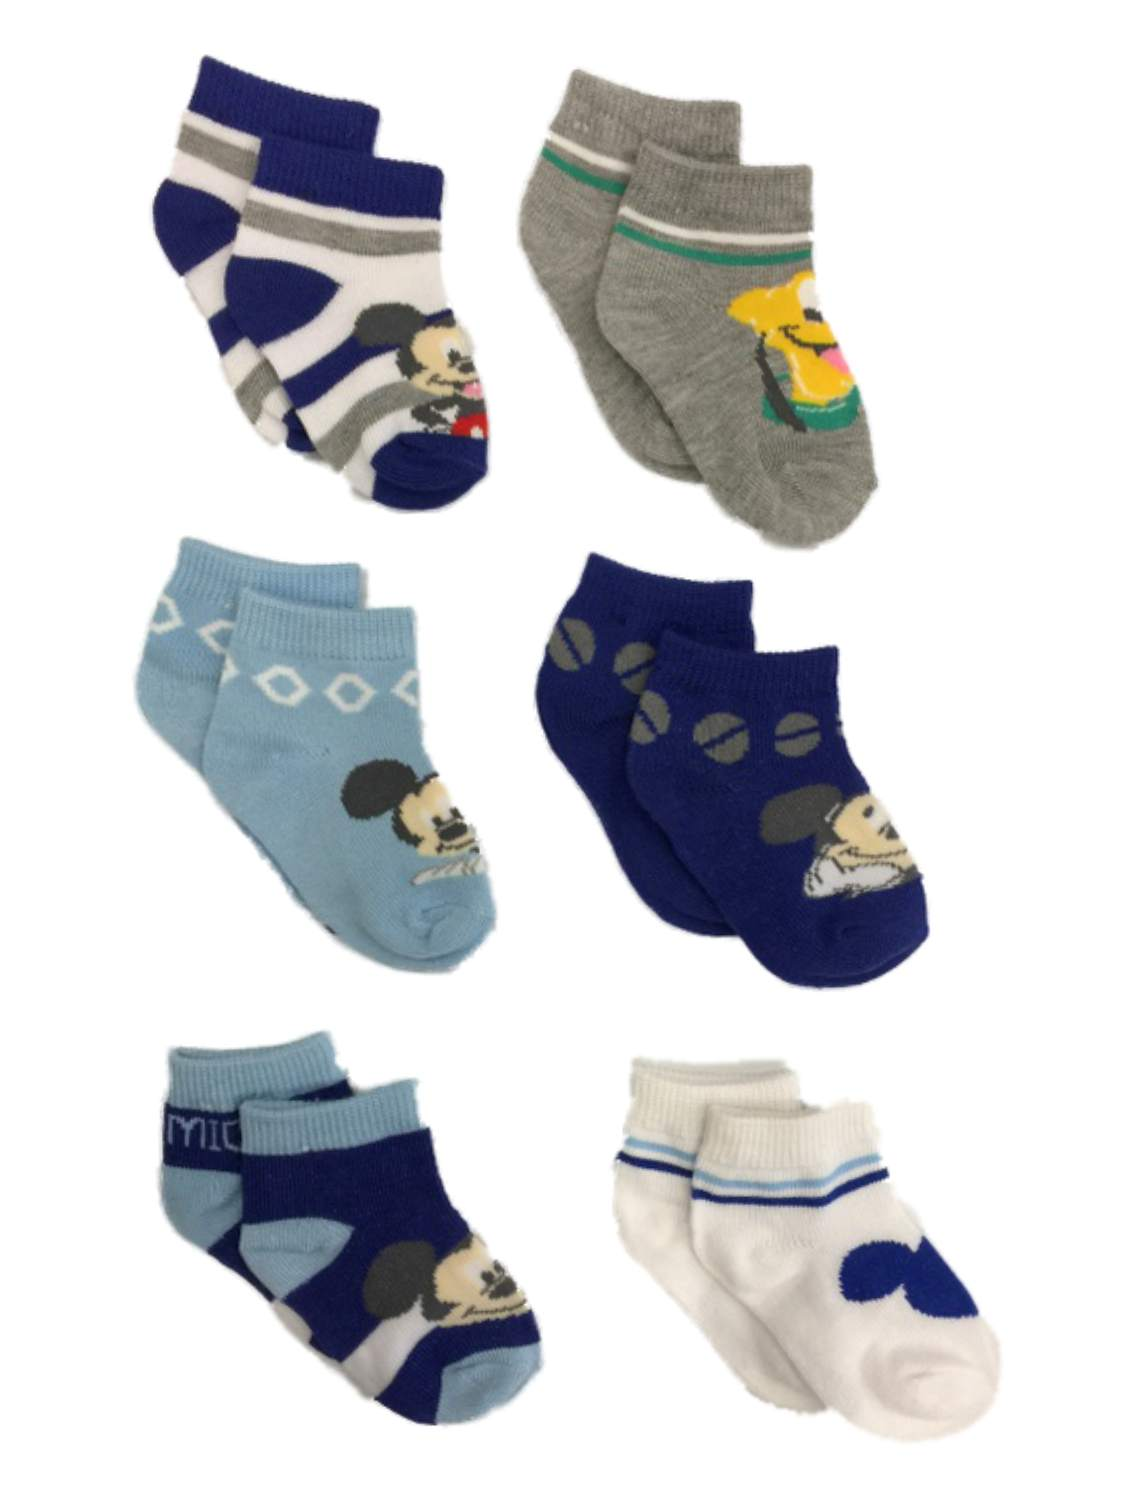 Disney Baby Mickey Mouse 6 Pairs Socks Infant Boys Blue Ages 6-12 Months #21584